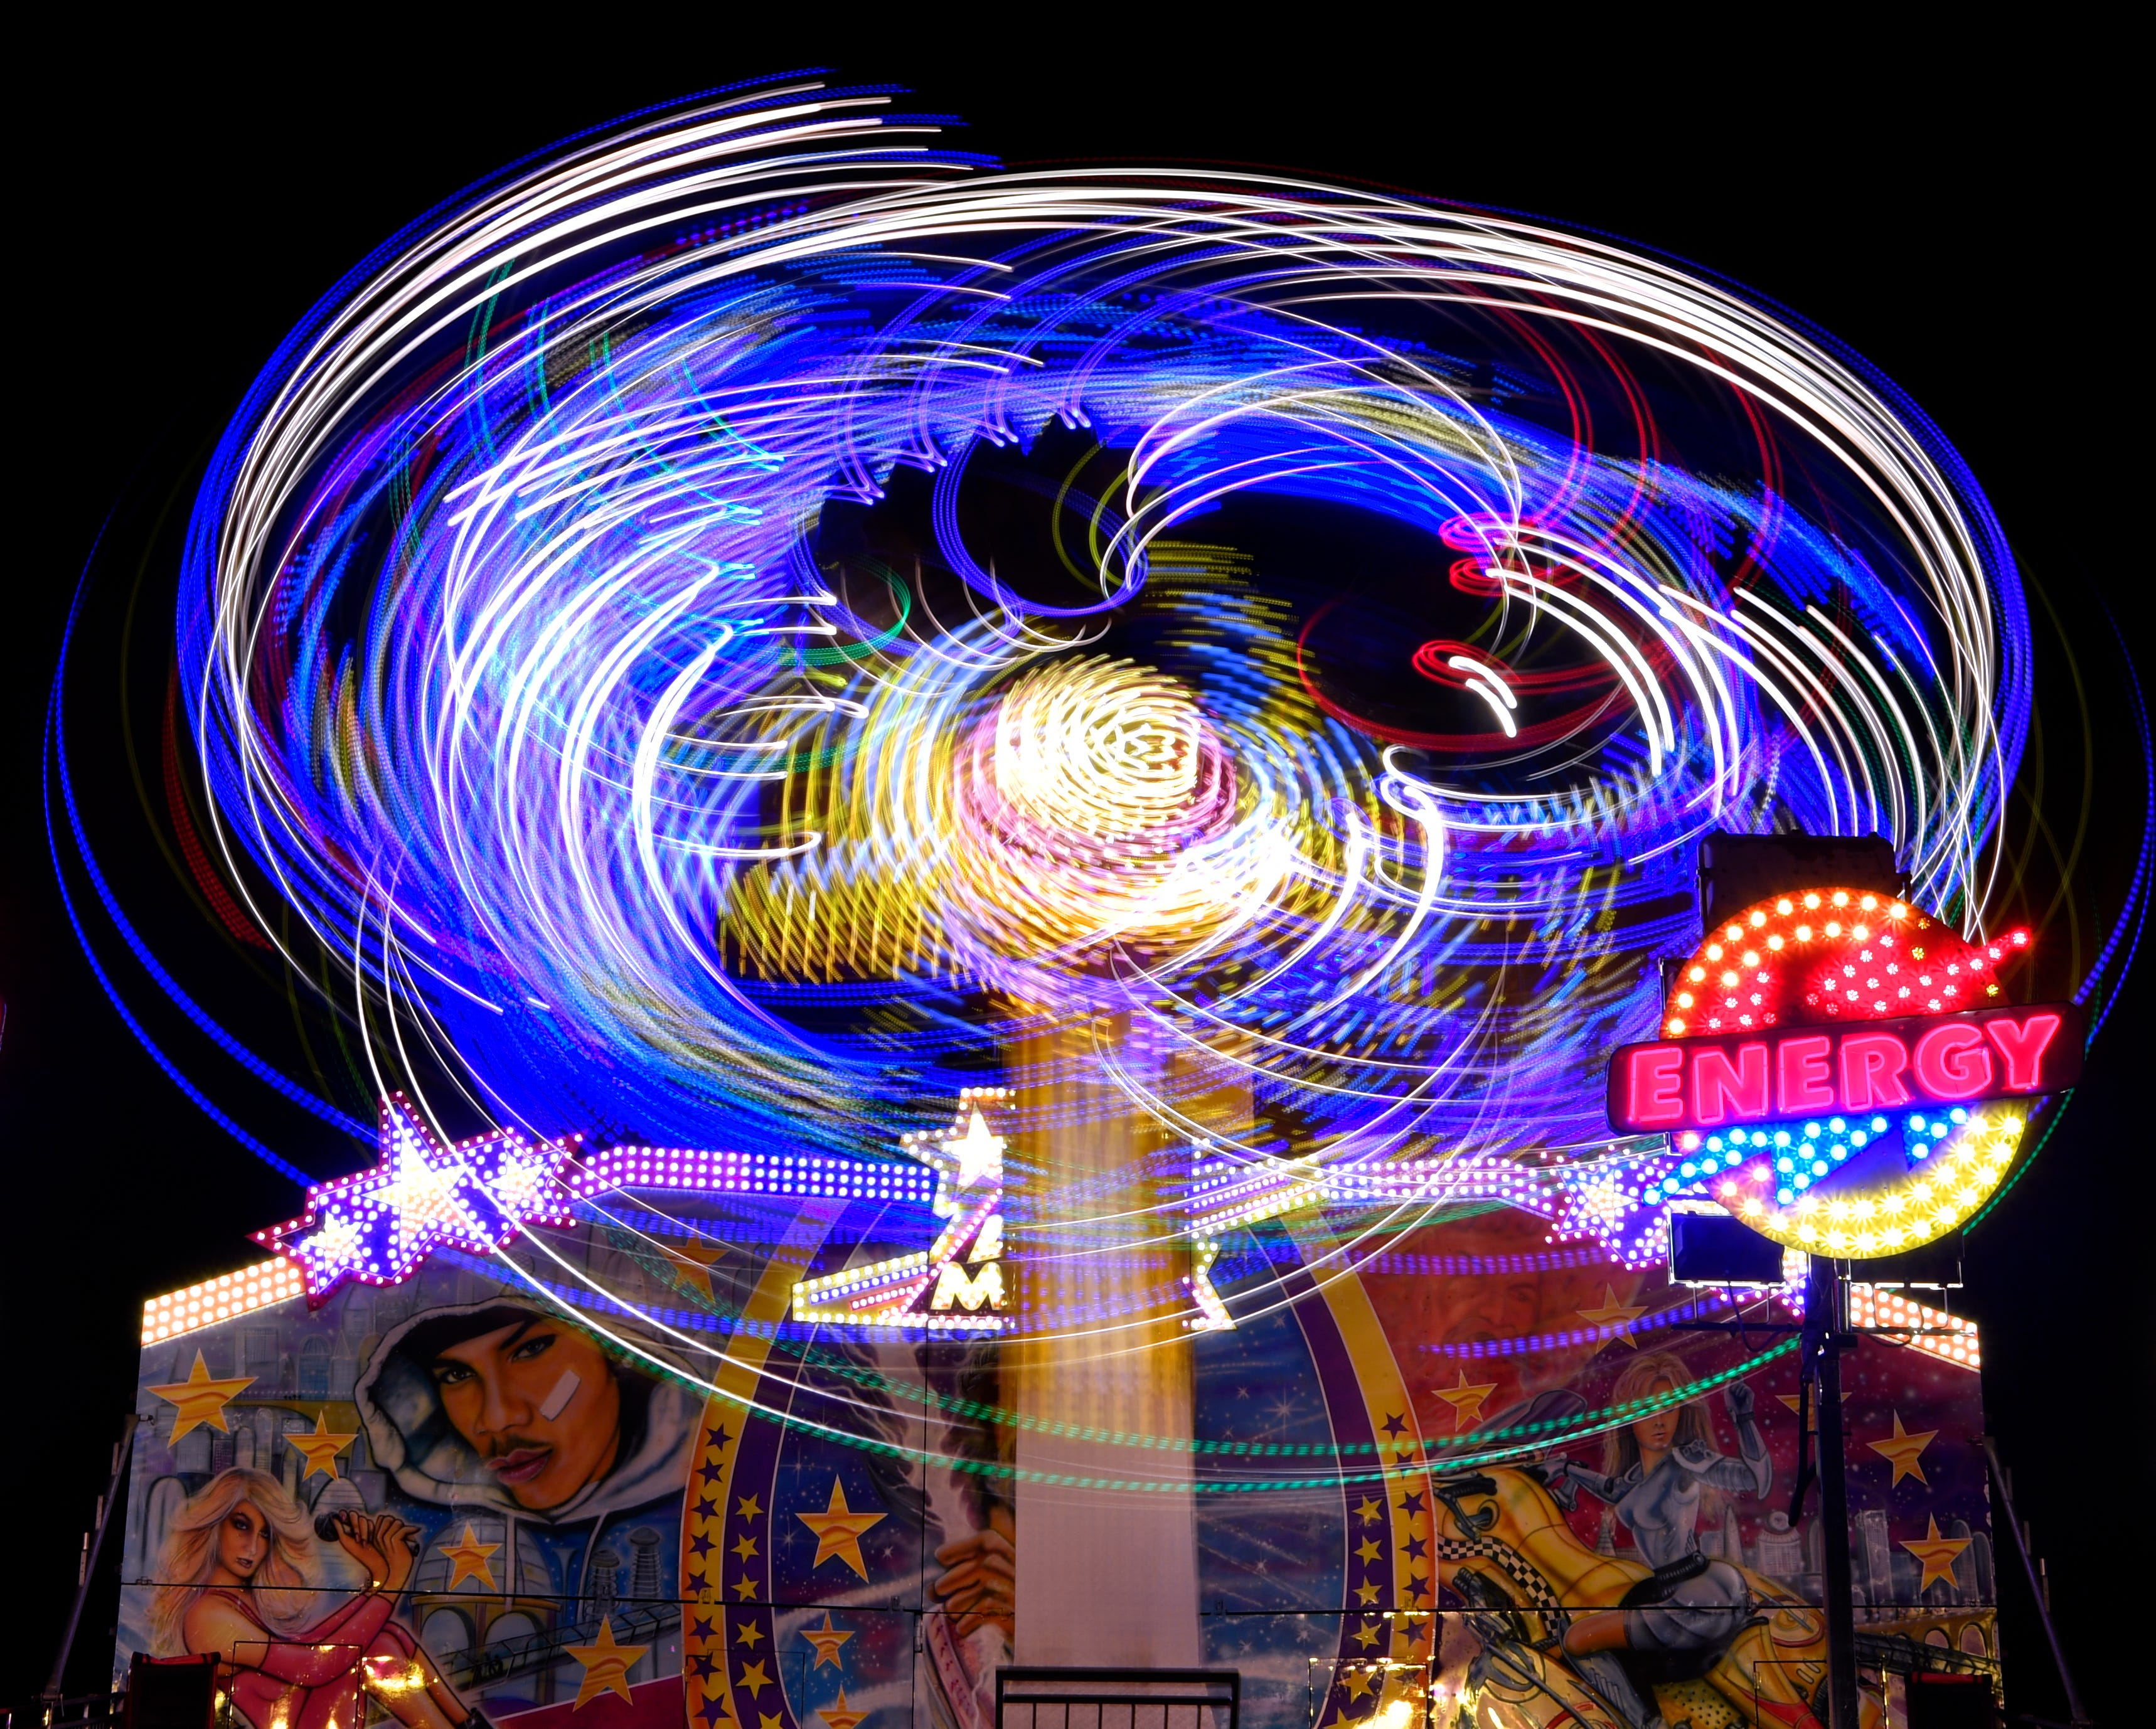 The lights of the Air Maxx at the West Texas Fair & Rodeo are blurred into a swirling pattern in this long exposure.